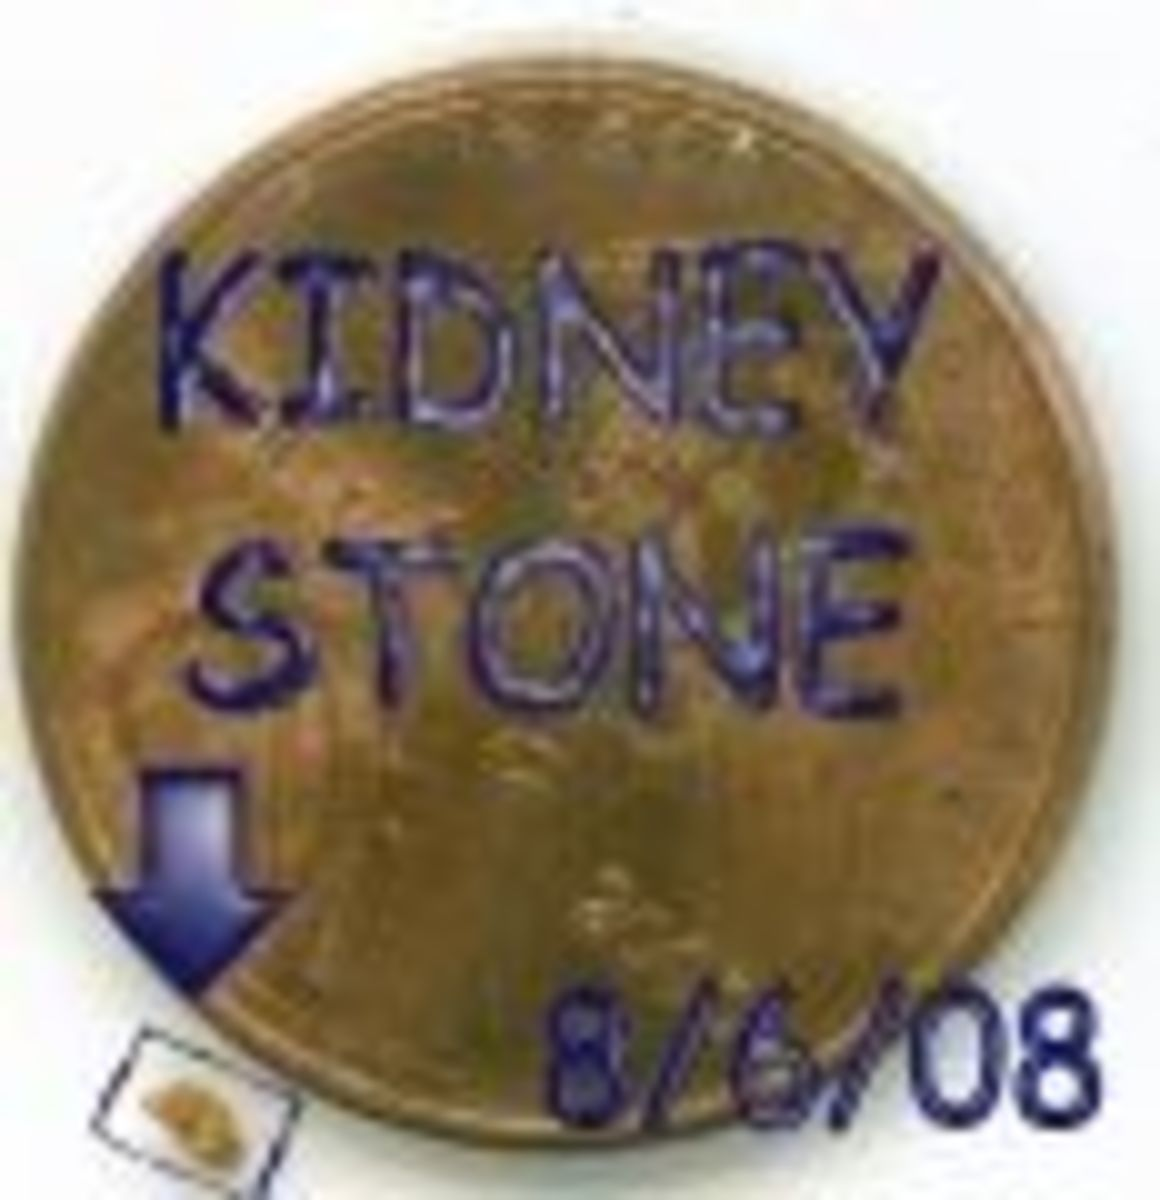 OH NO! A KIDNEY STONE!